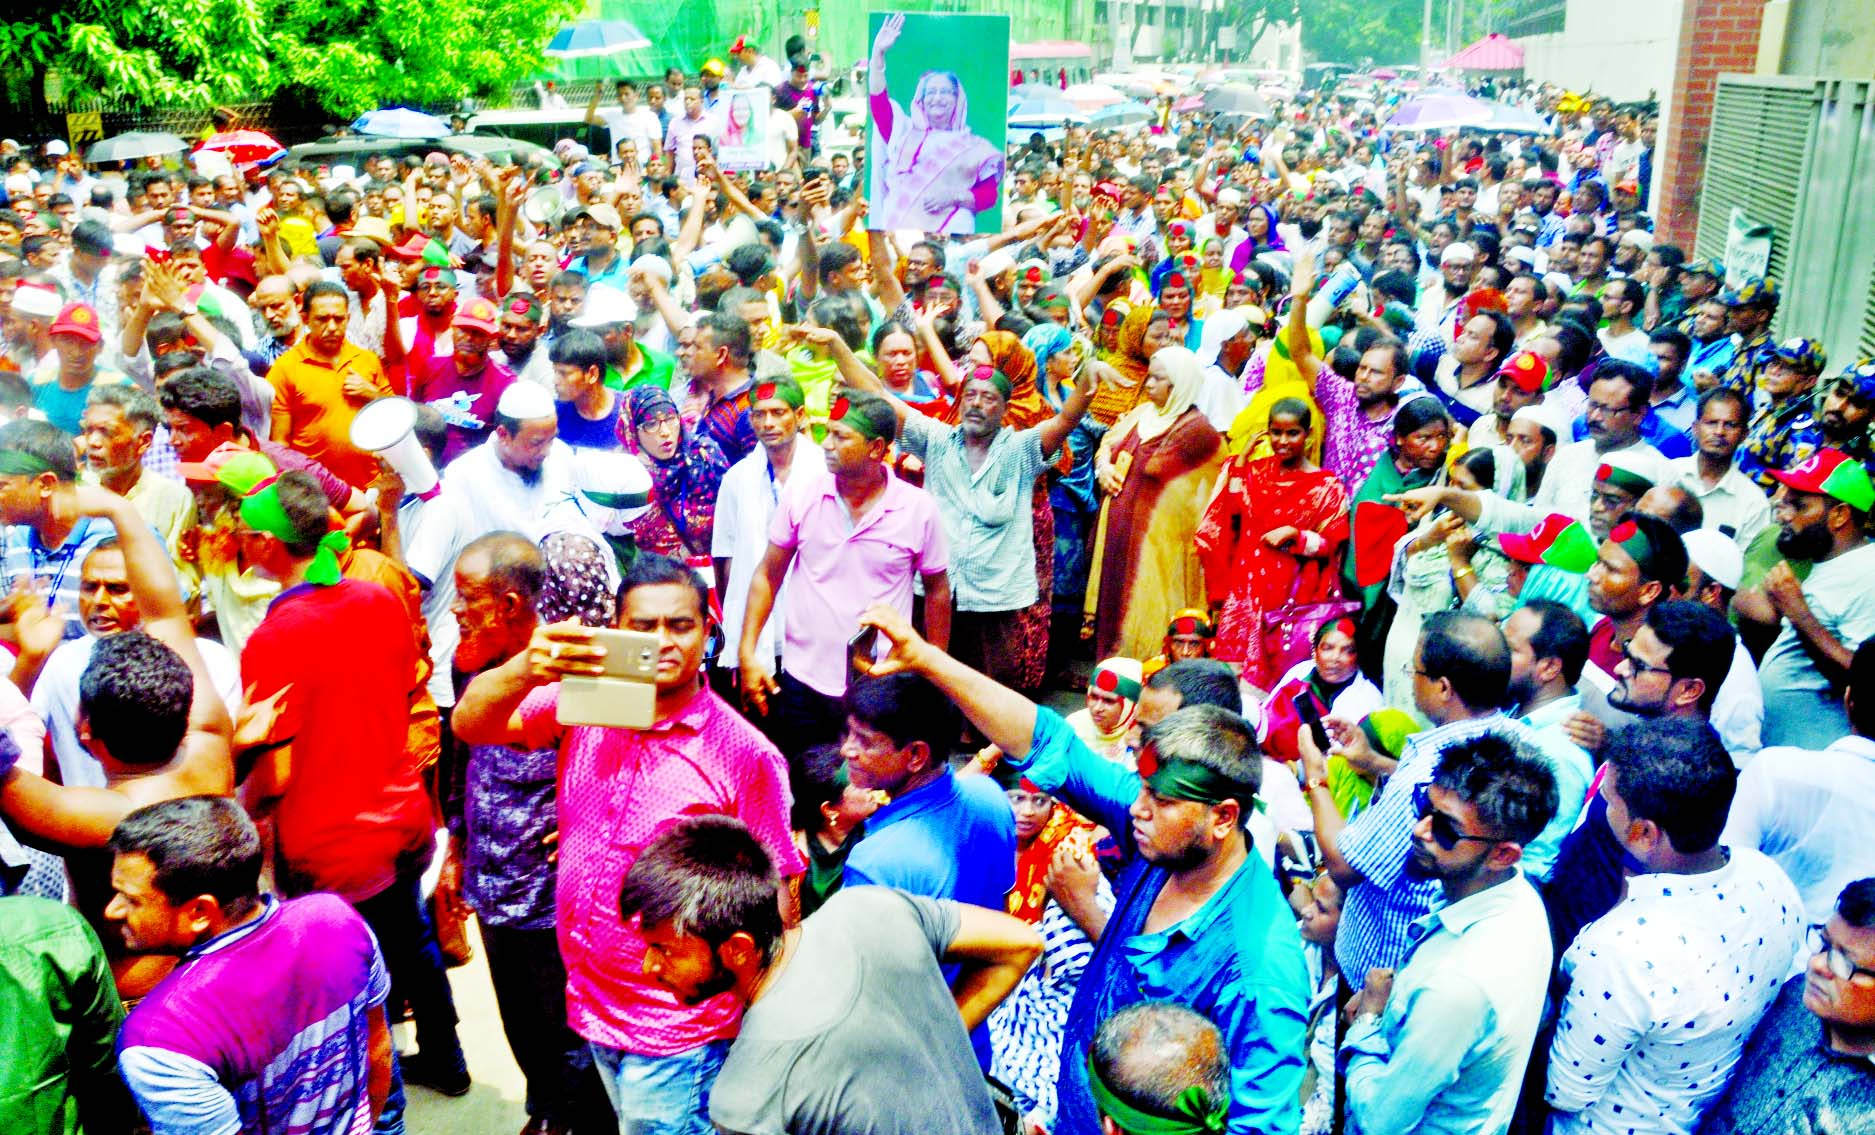 Workers of Poura Service Association staged demonstration in front of Bangladesh Secretariat aiming to gherao the Local Govt Ministry to press home their demands including arrears on Wednesday.